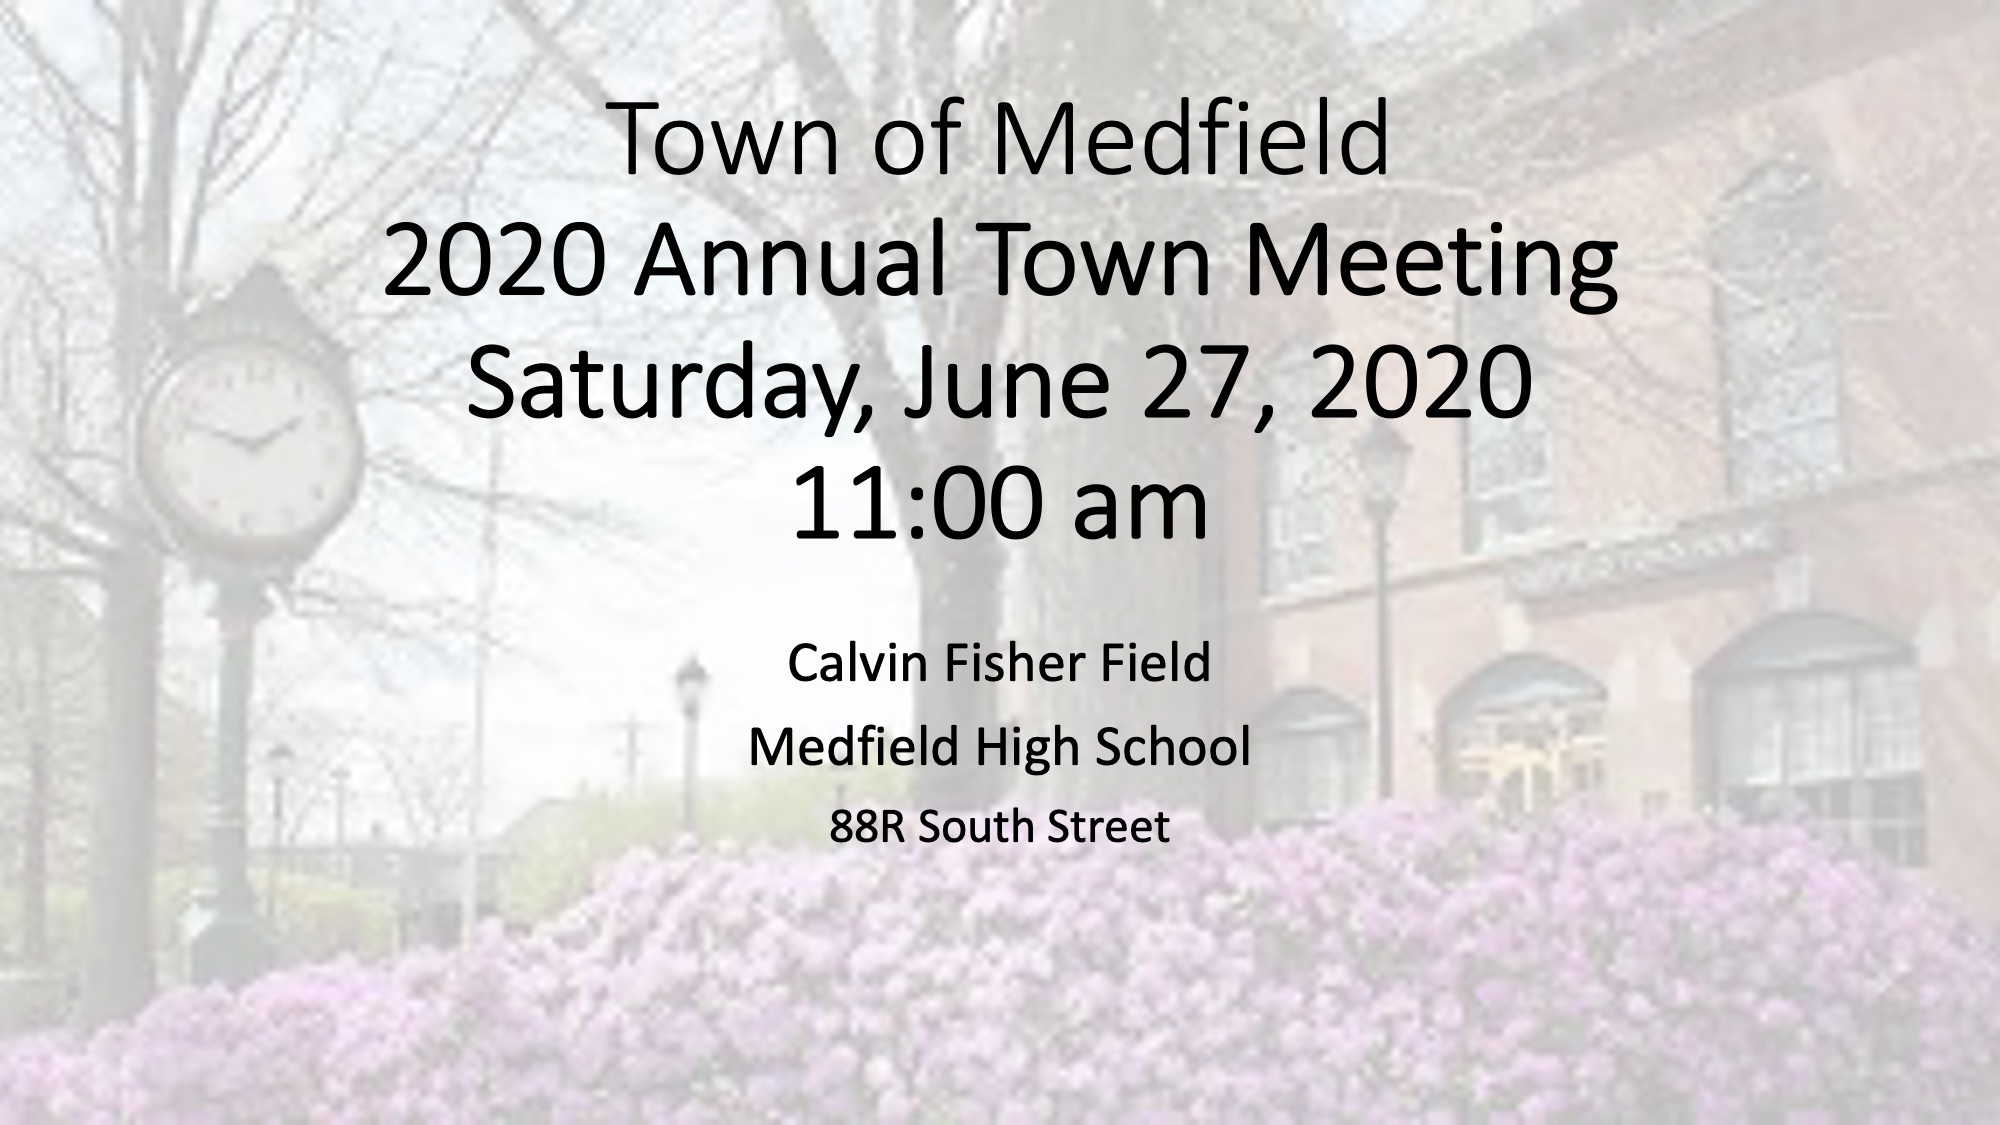 Town Meeting Saturday June 27 at 11AM